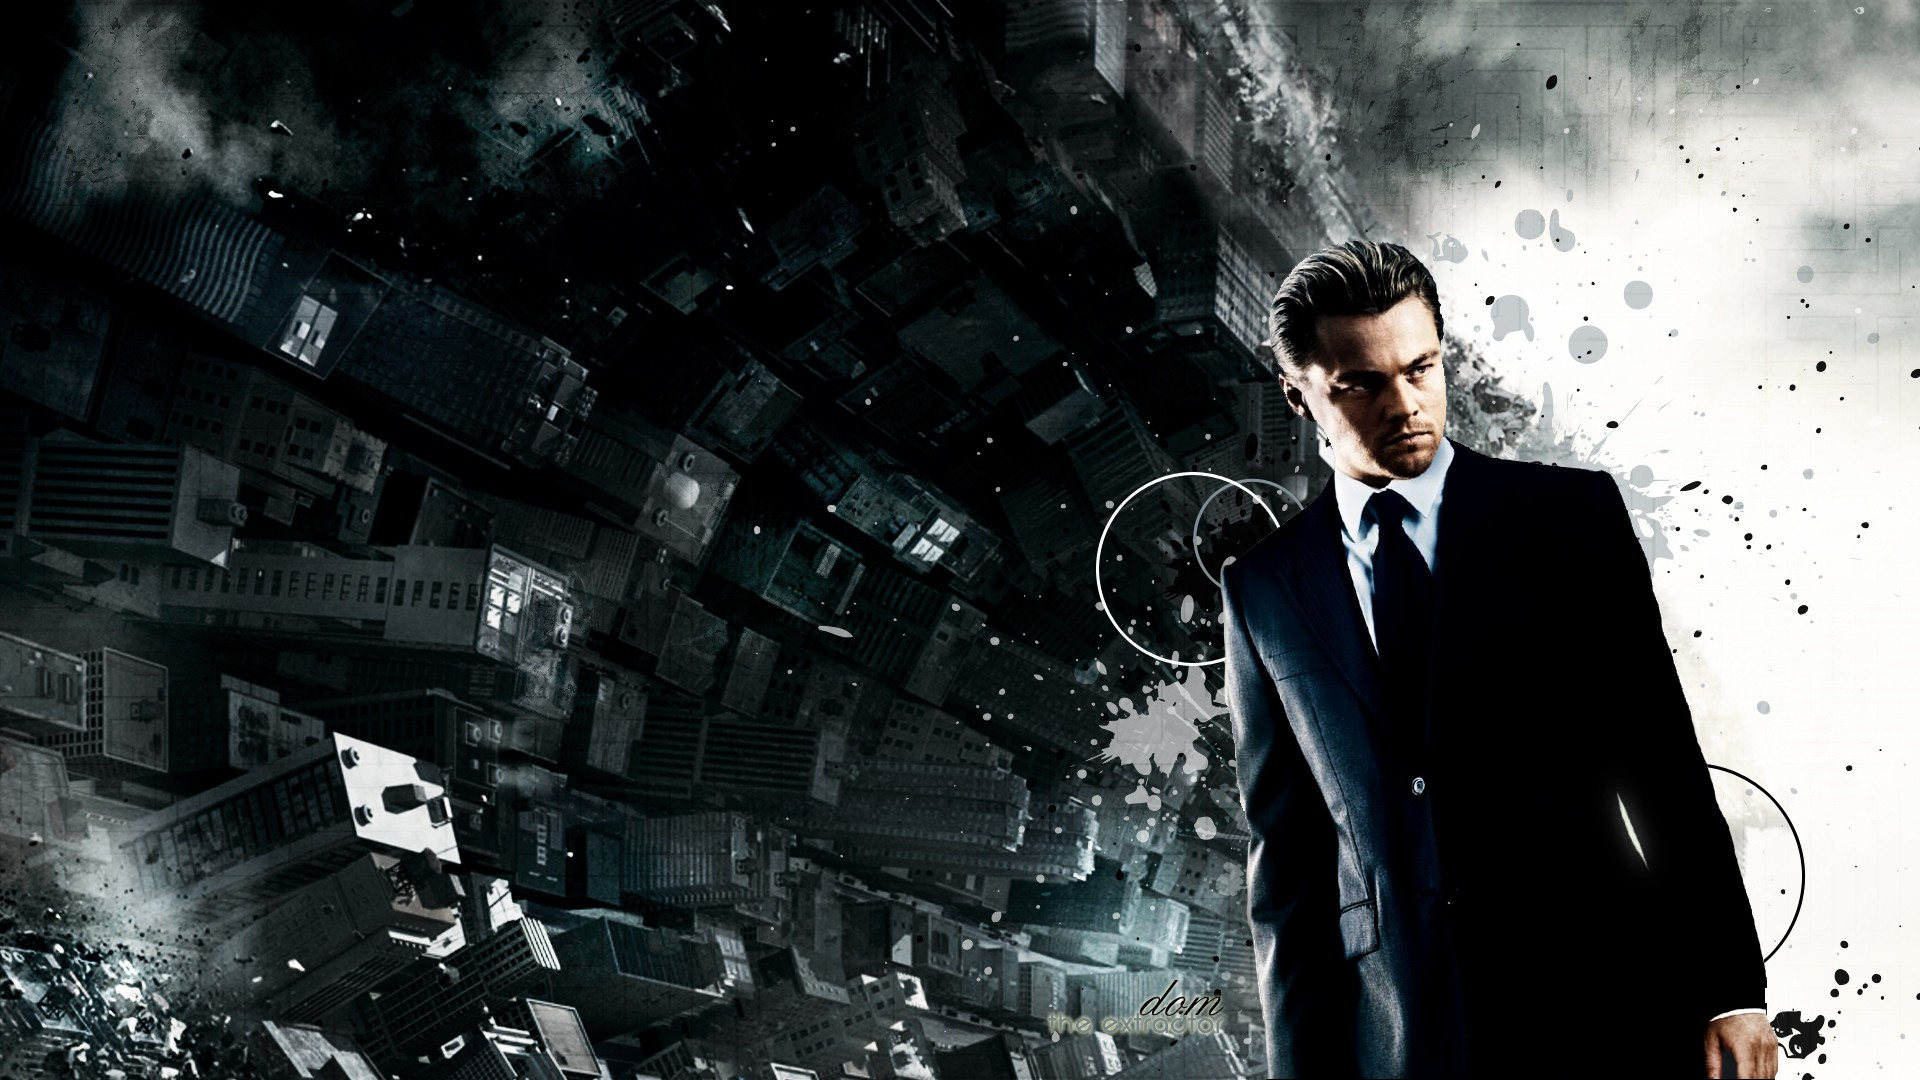 Inception characters Leonardo DiCaprio movie posters wallpaper    Inception Wallpaper 1920x1080